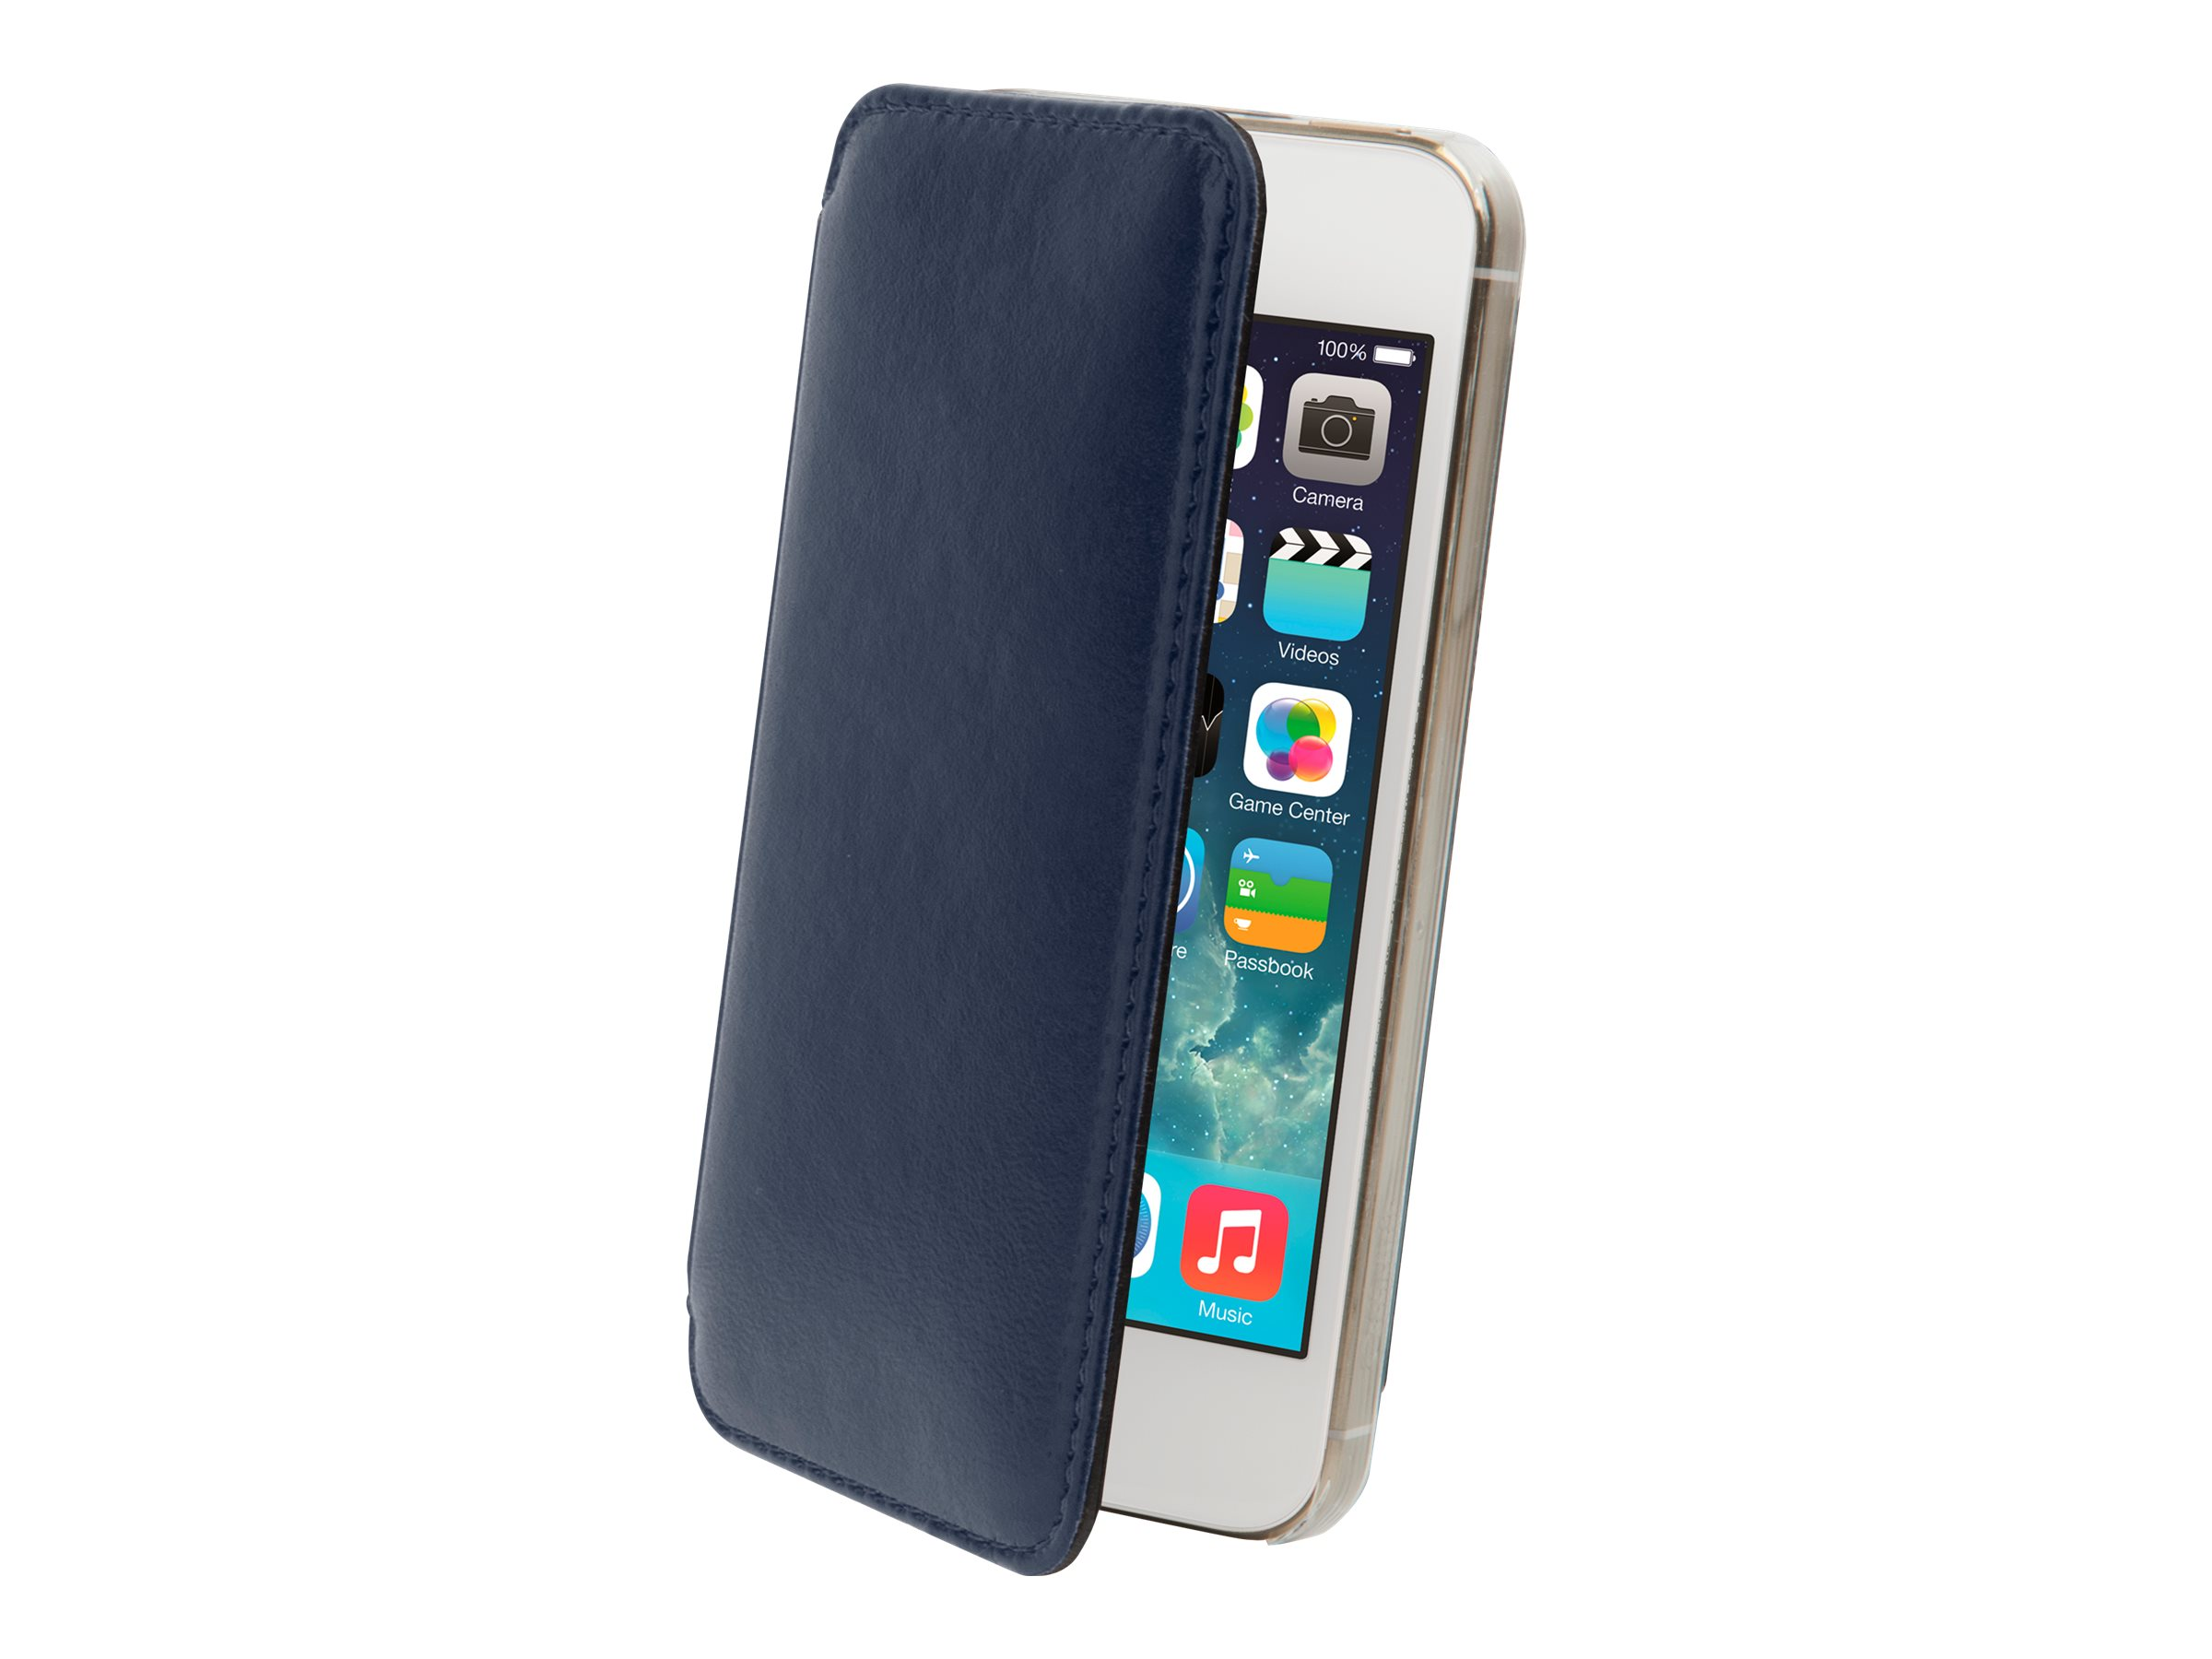 Muvit Made in Paris Crystal Folio - Protection à rabat pour iPhone 5, 5s - bleu nuit luxe